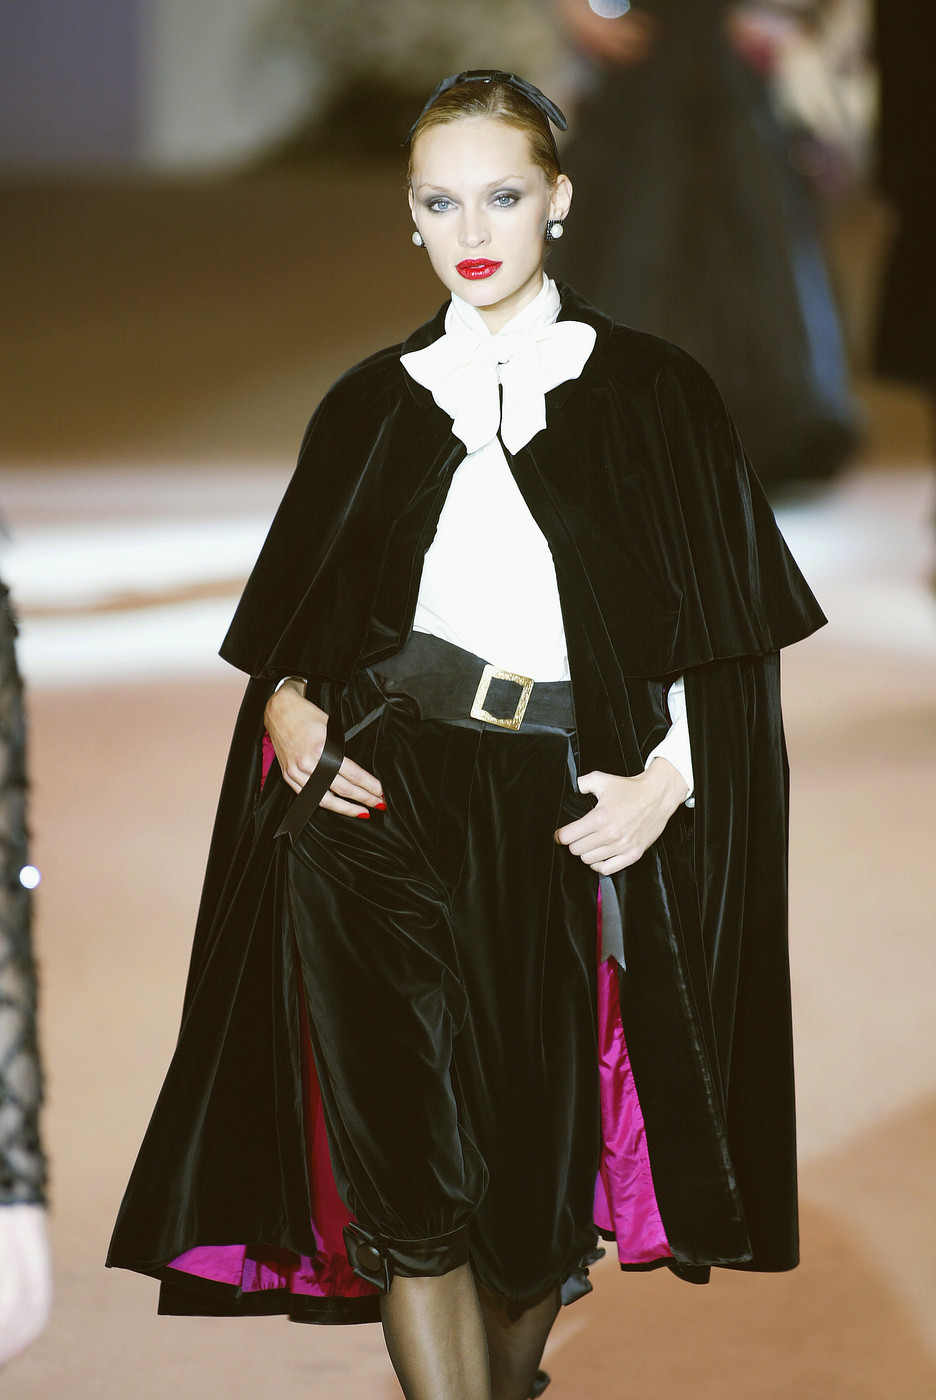 Yves Saint Laurent Spring/Summer 2002 Haute Couture collection via fashioned by love / british fashion blog